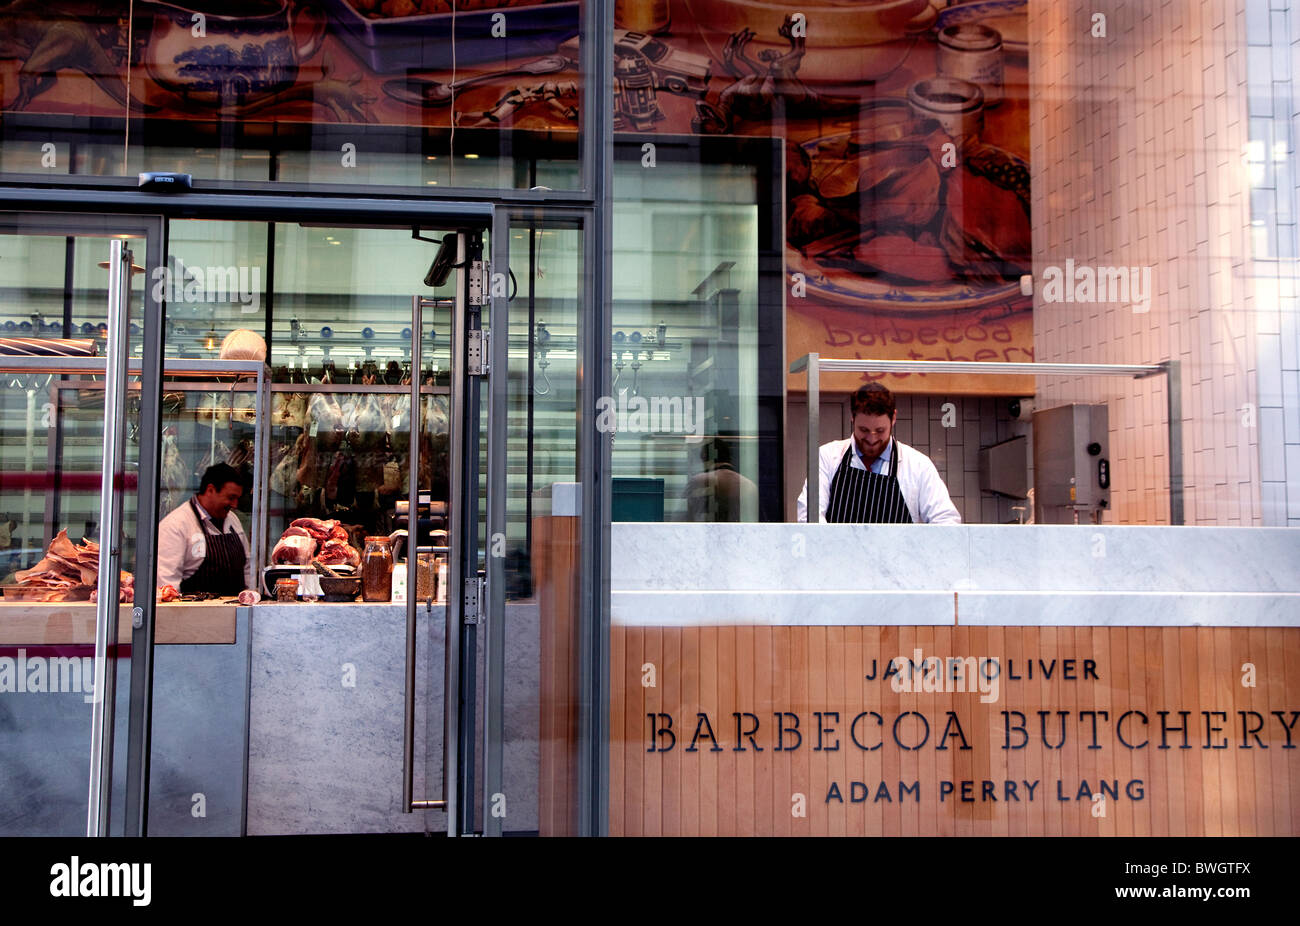 Barbecoa Butchery By Jamie Oliver And Adam Perry Lang In